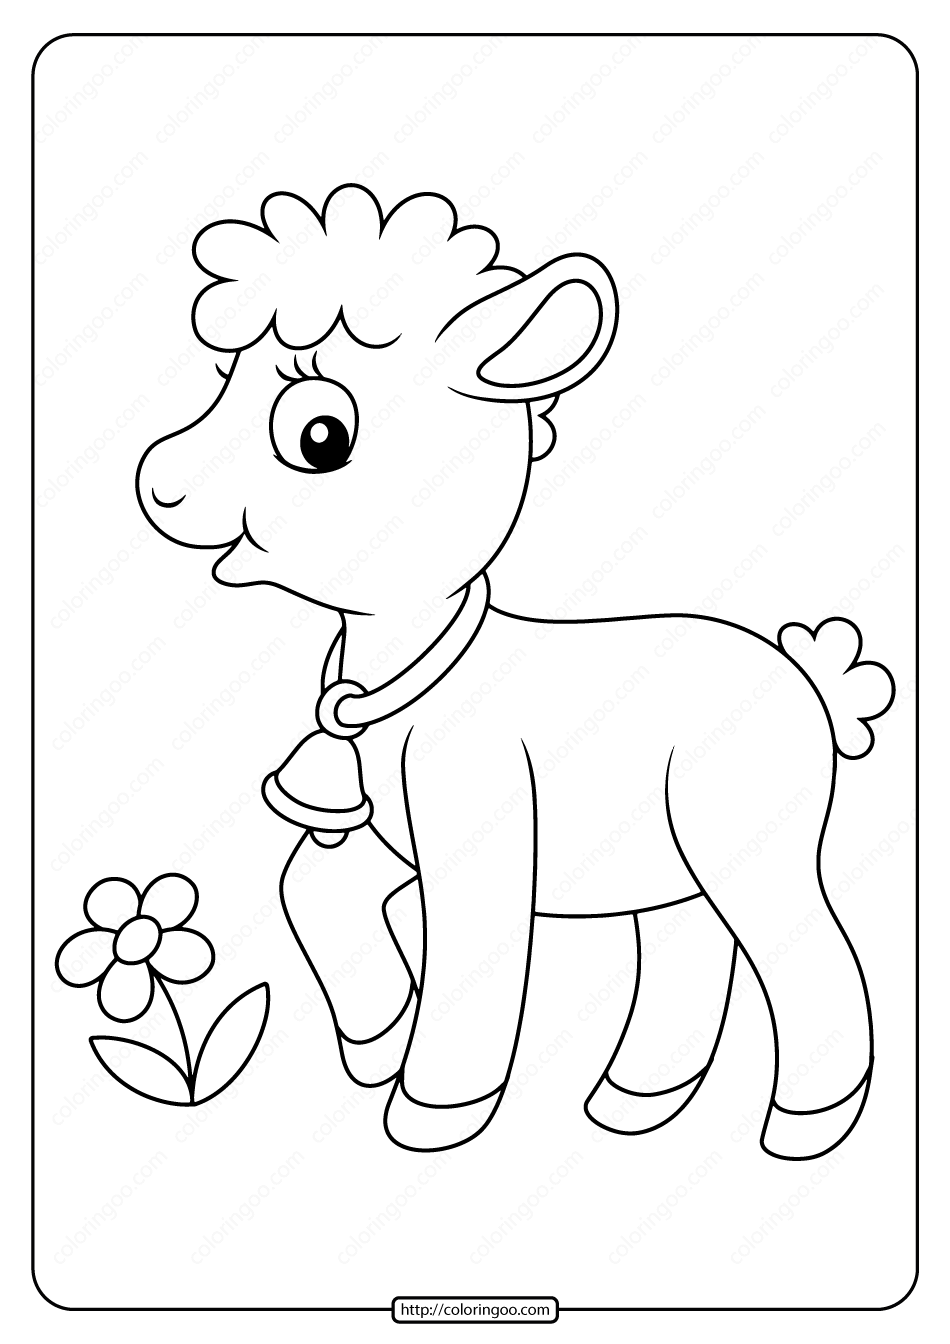 Printable Baby Lamb Pdf Coloring Page in 2020 | Farm ...